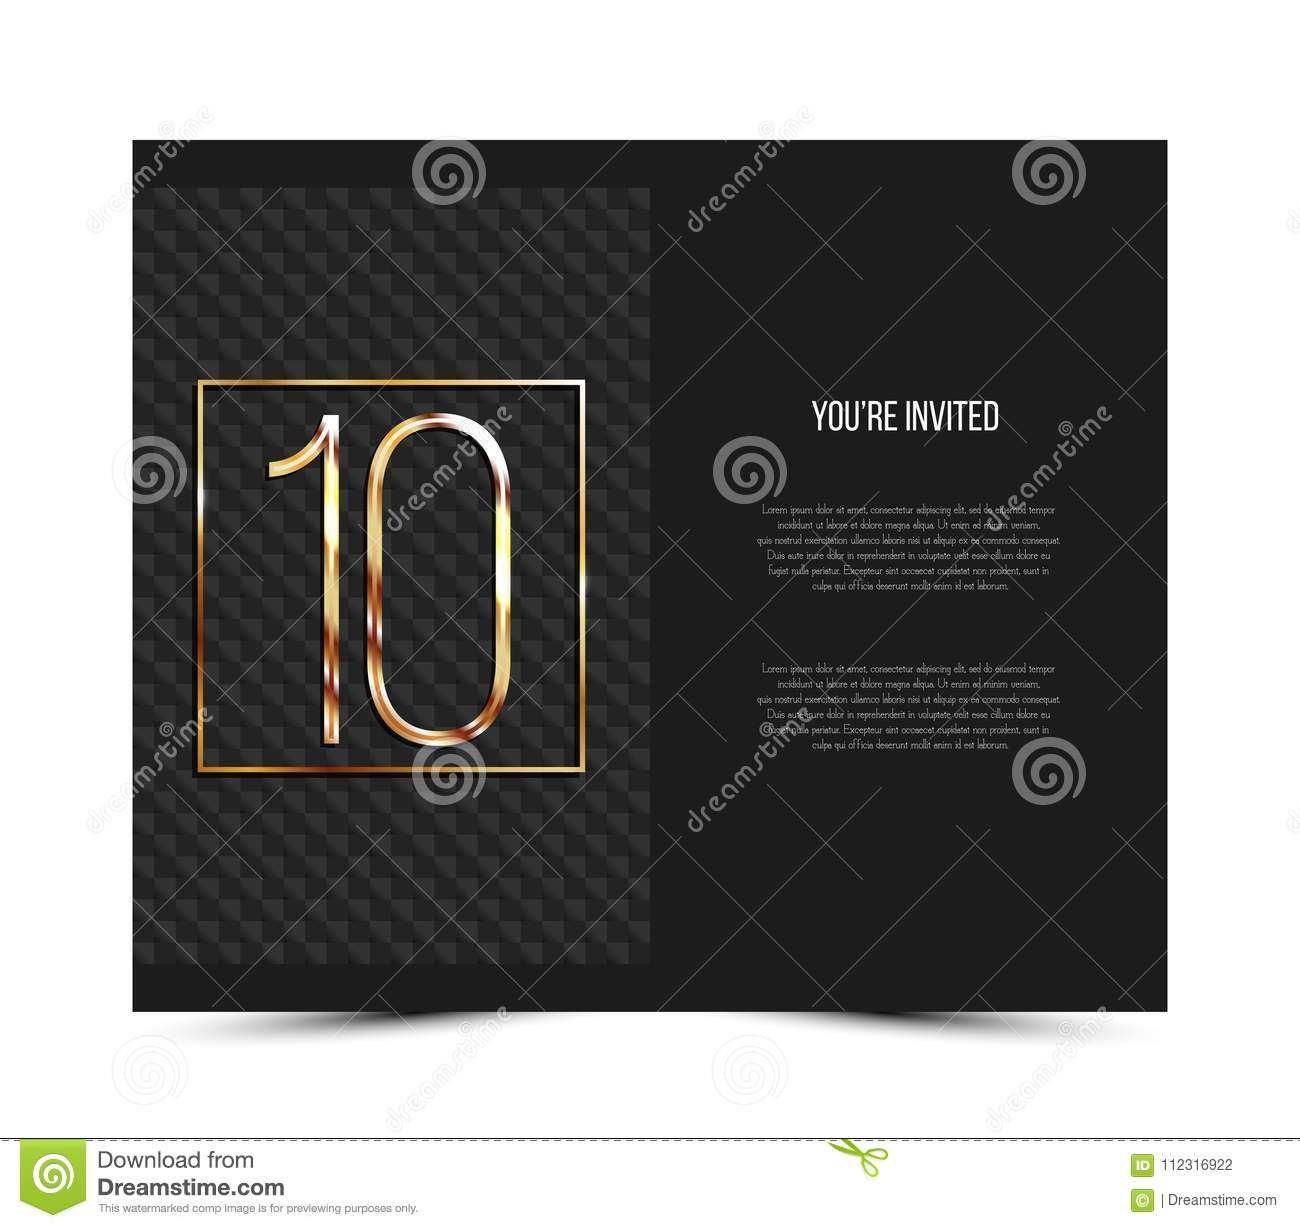 10th anniversary invitation card template vector illustration download 10th anniversary invitation card template vector illustration stock vector illustration of poster stopboris Image collections